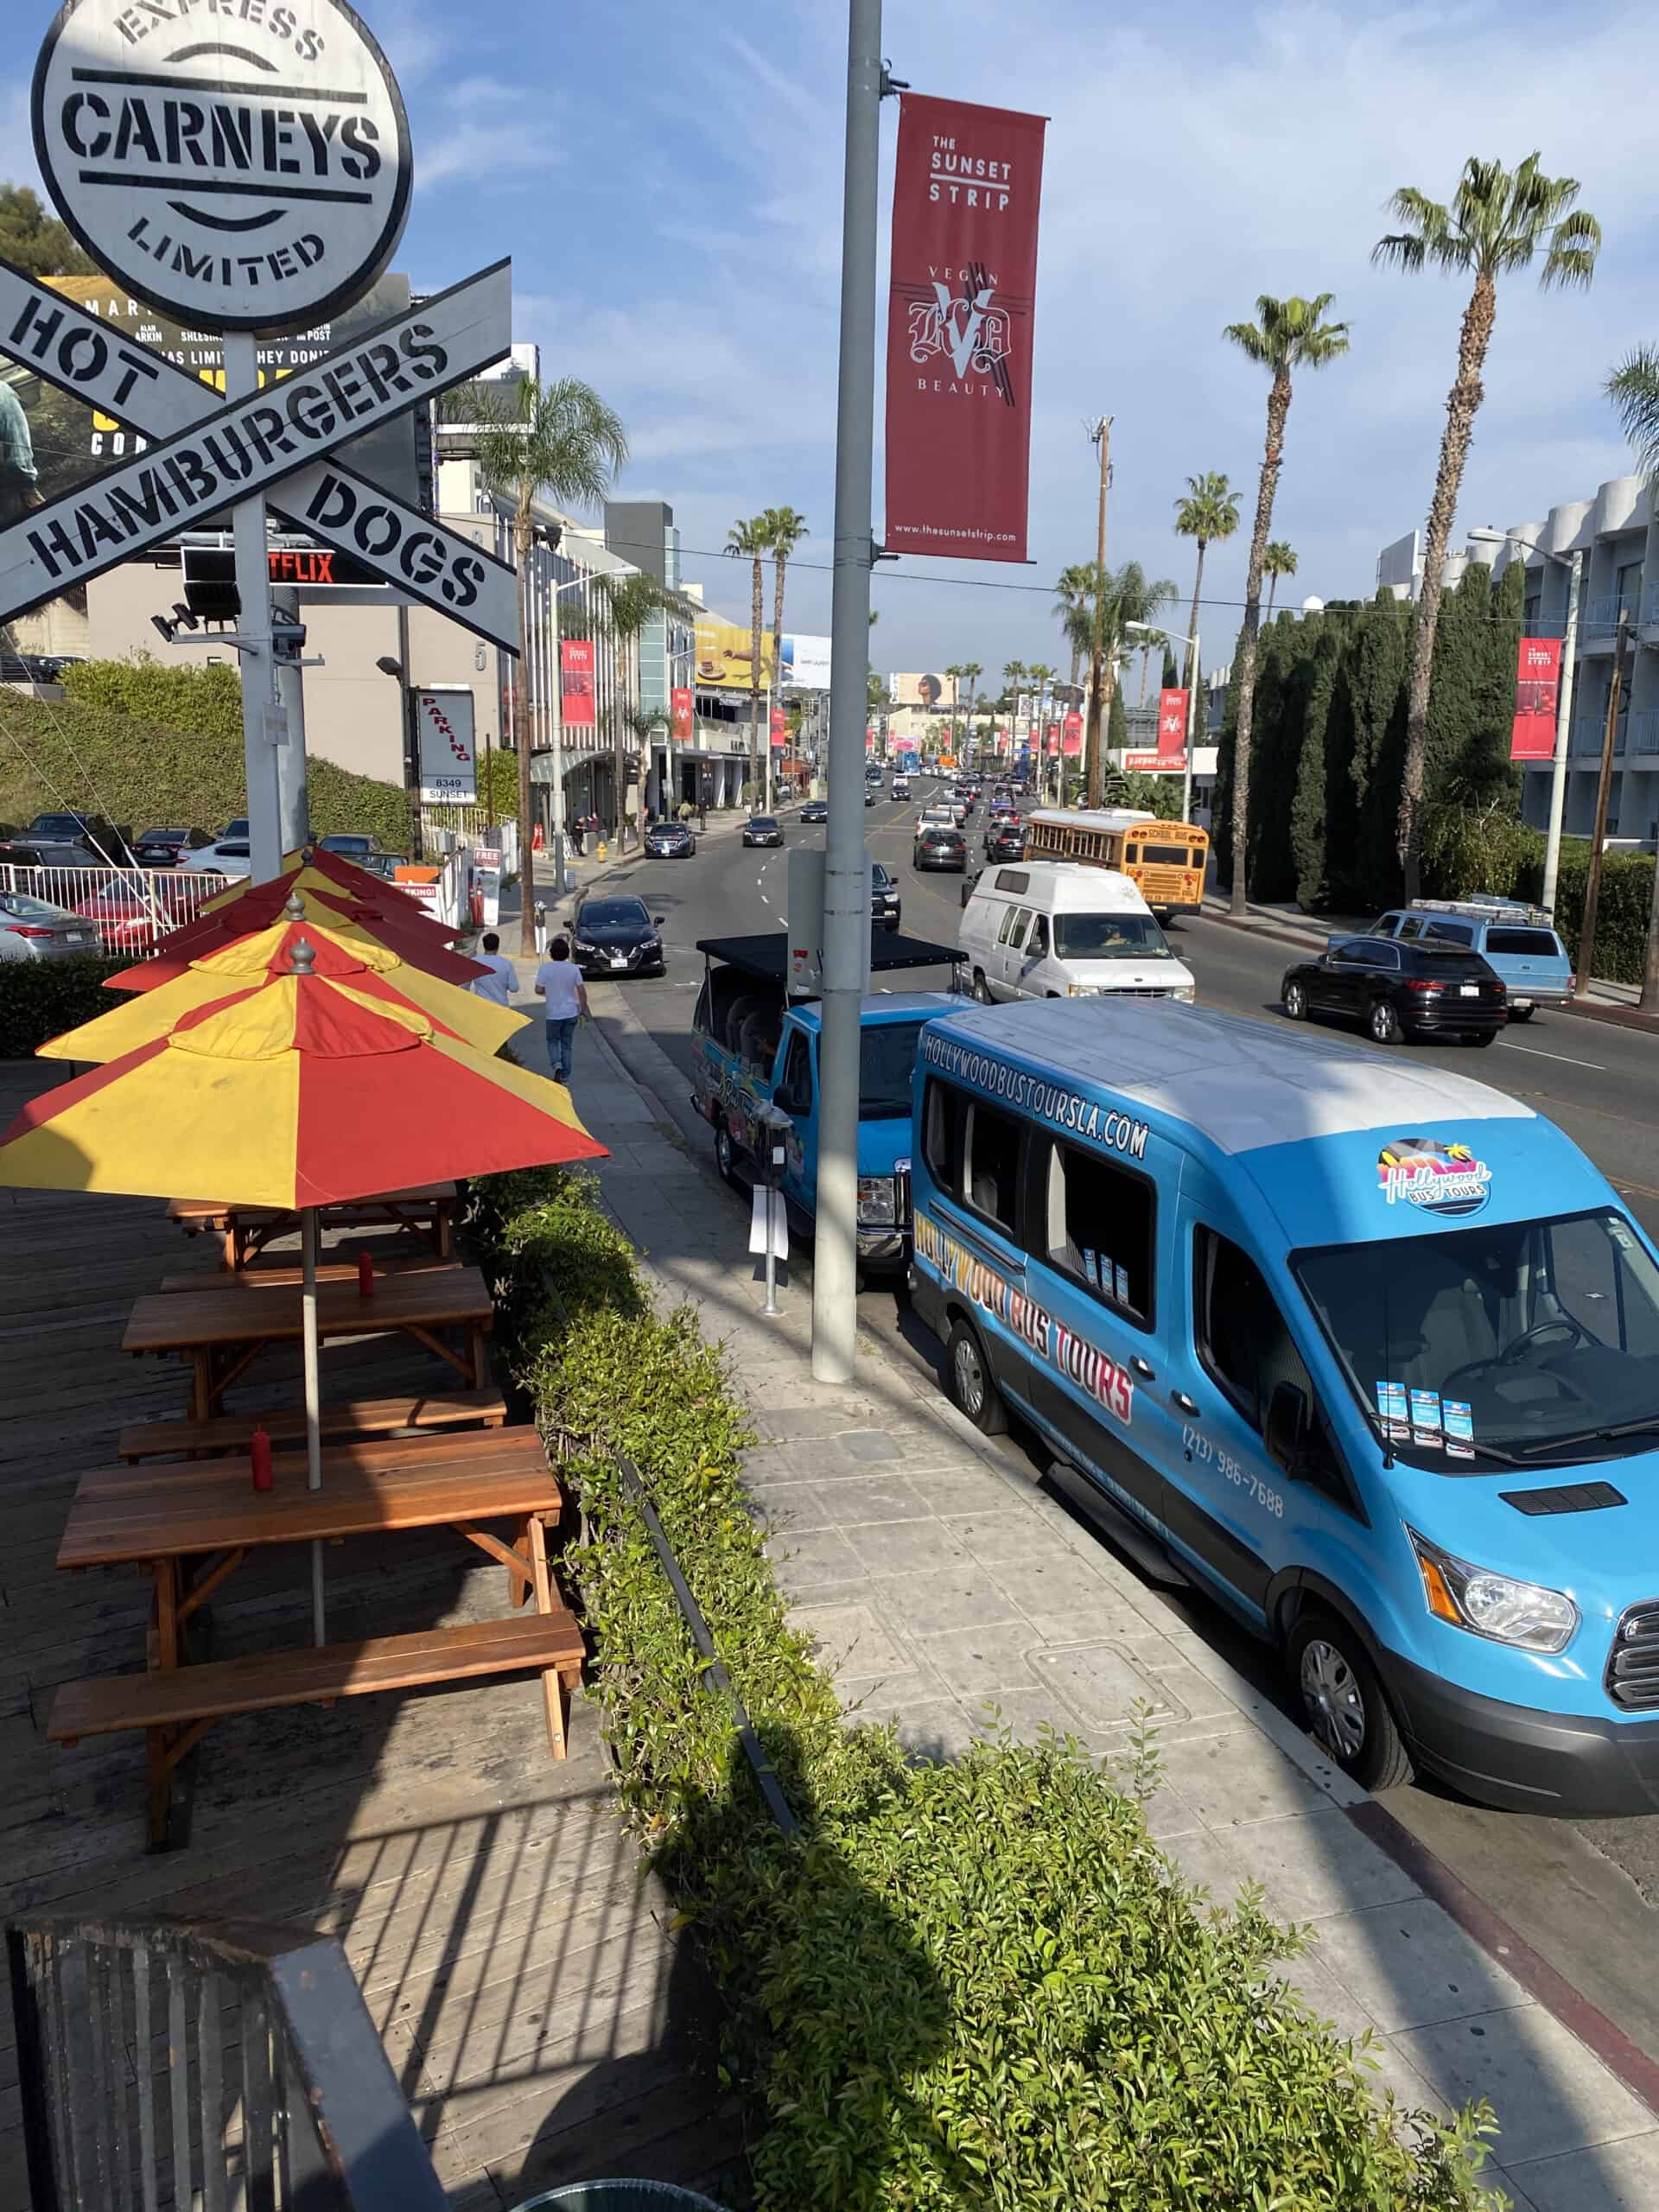 Hollywood Bus Tours - Carneys